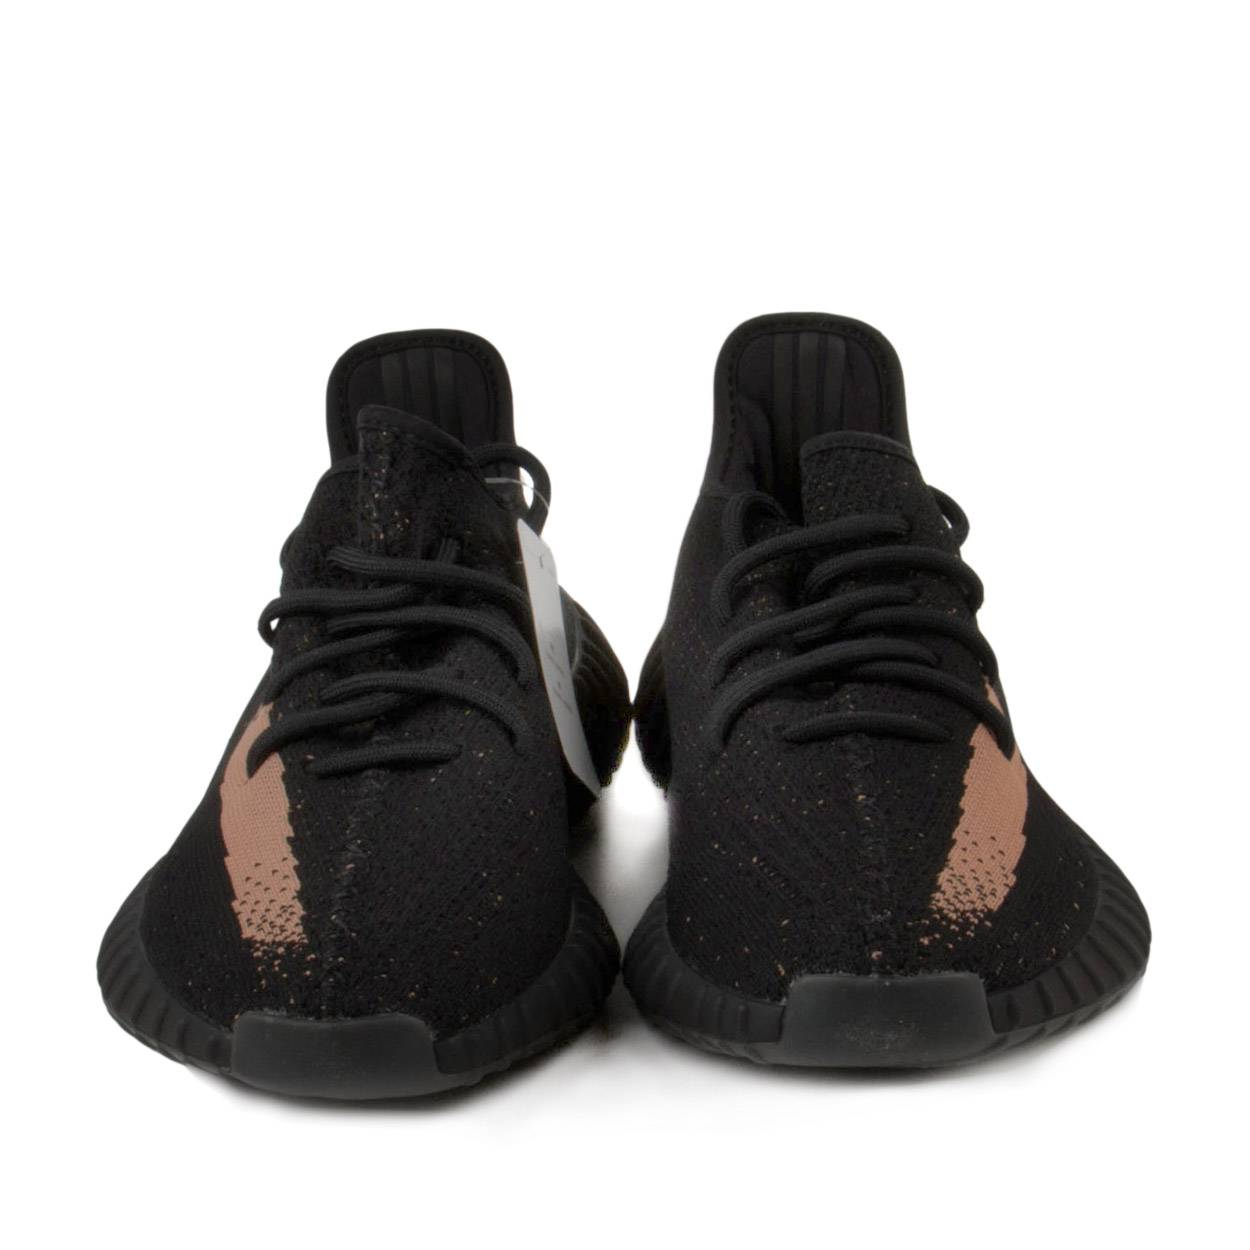 SoleValue Adidas Yeezy Boost 350 V2 Core Black Copper BY1605